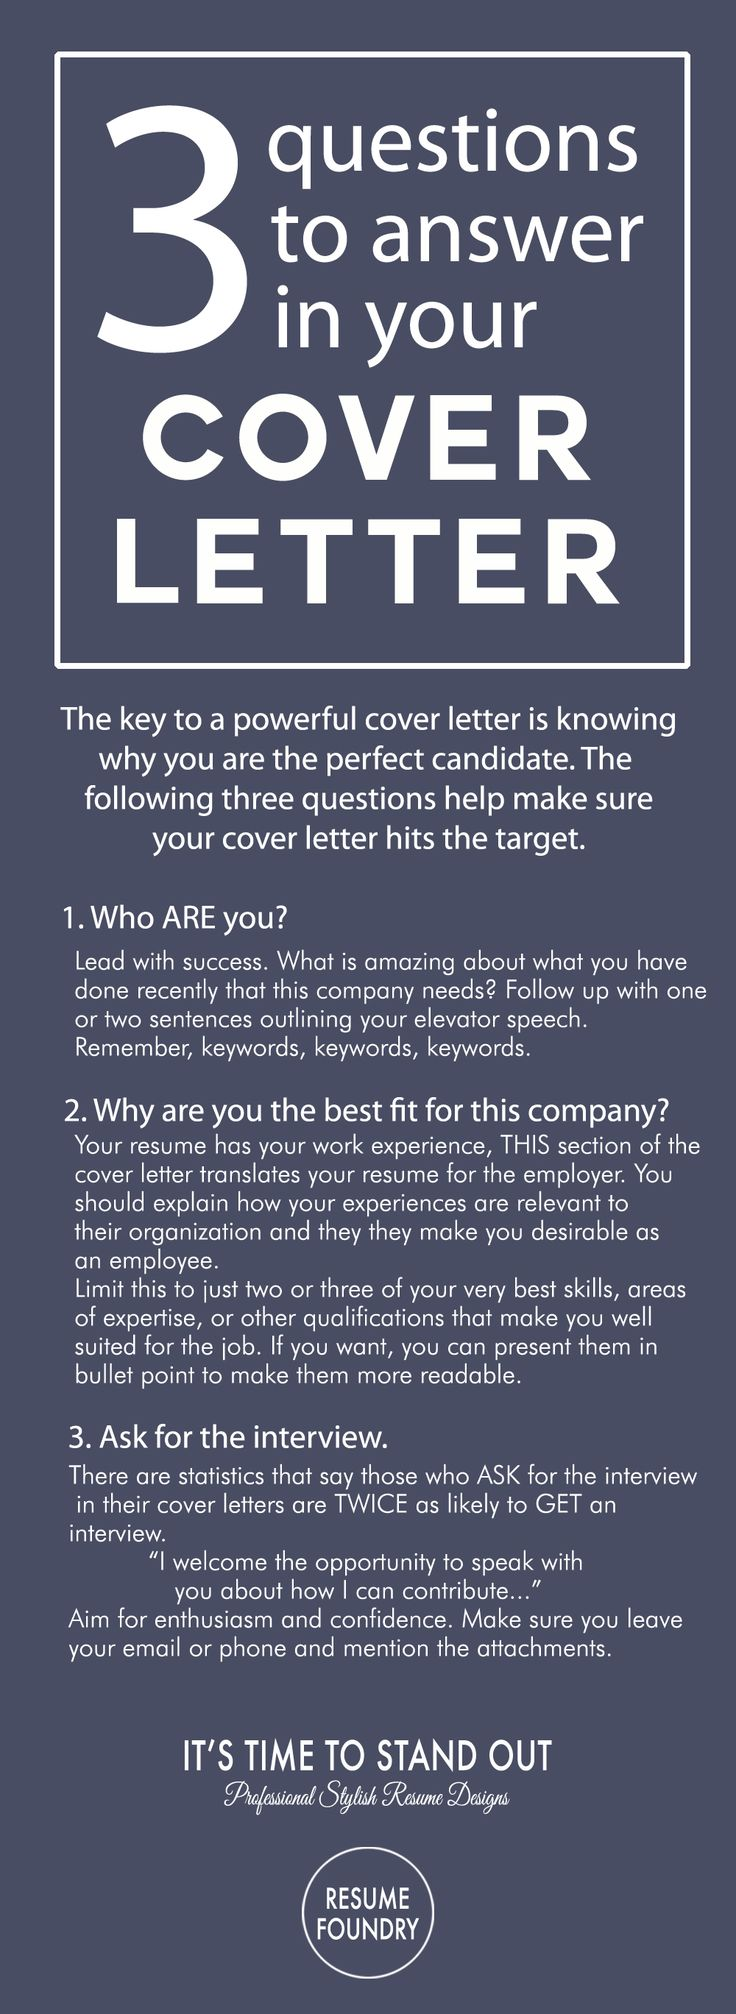 cover letter tips outline how to write a cover letter - How To Write A Cover Letter And Resume